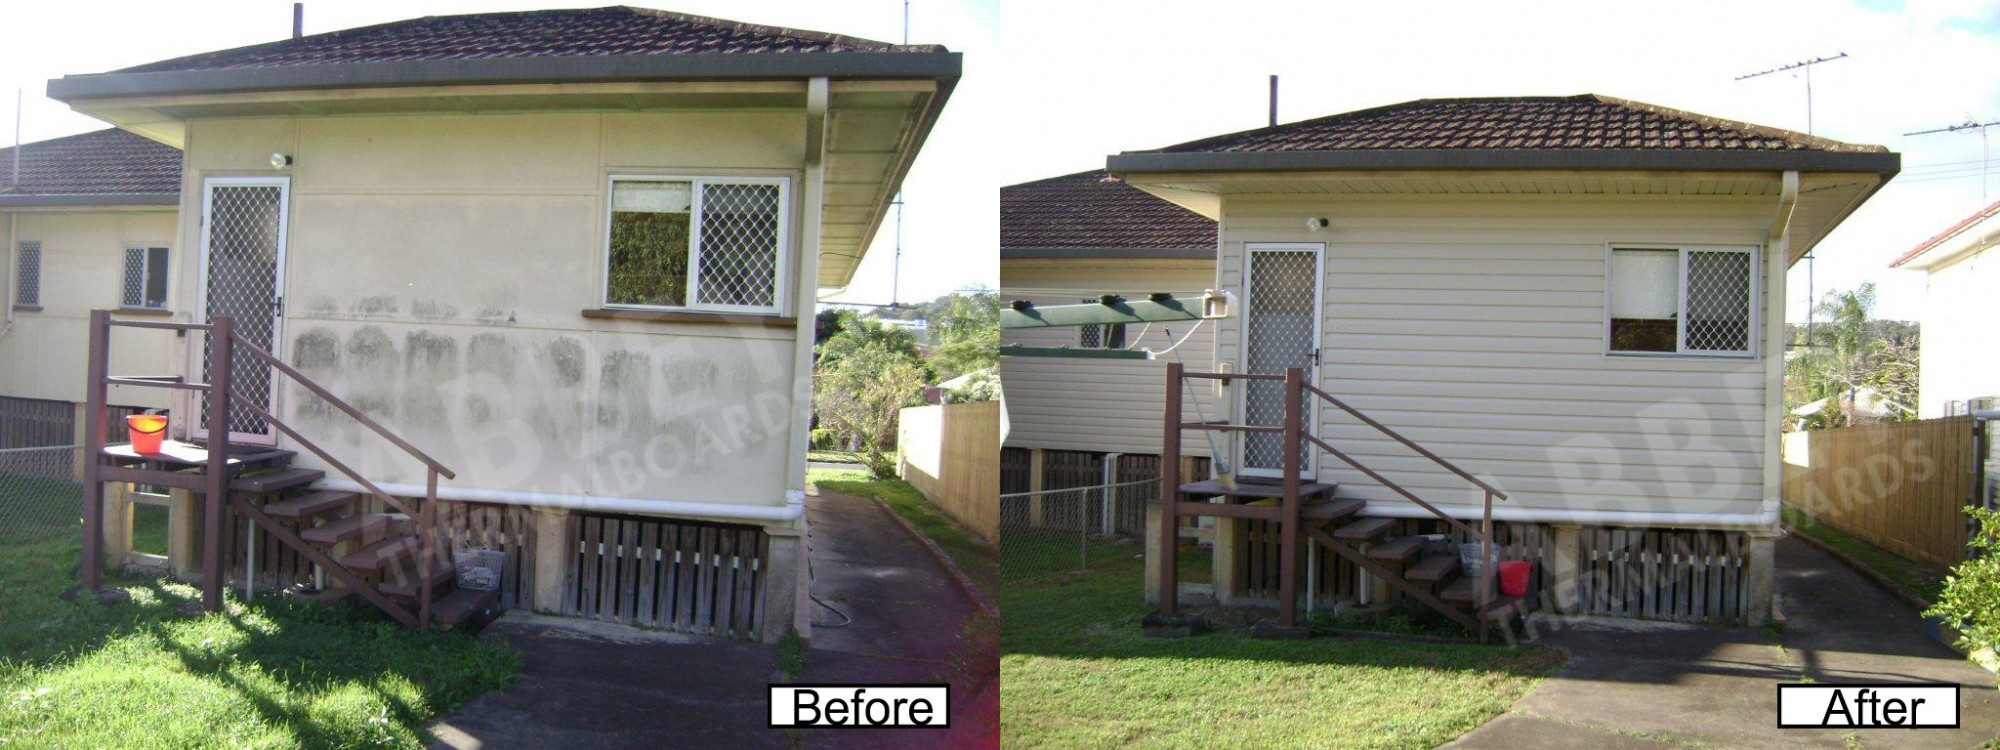 The back shots before and after of cladding completed for a home by Abbey Thermalboards.